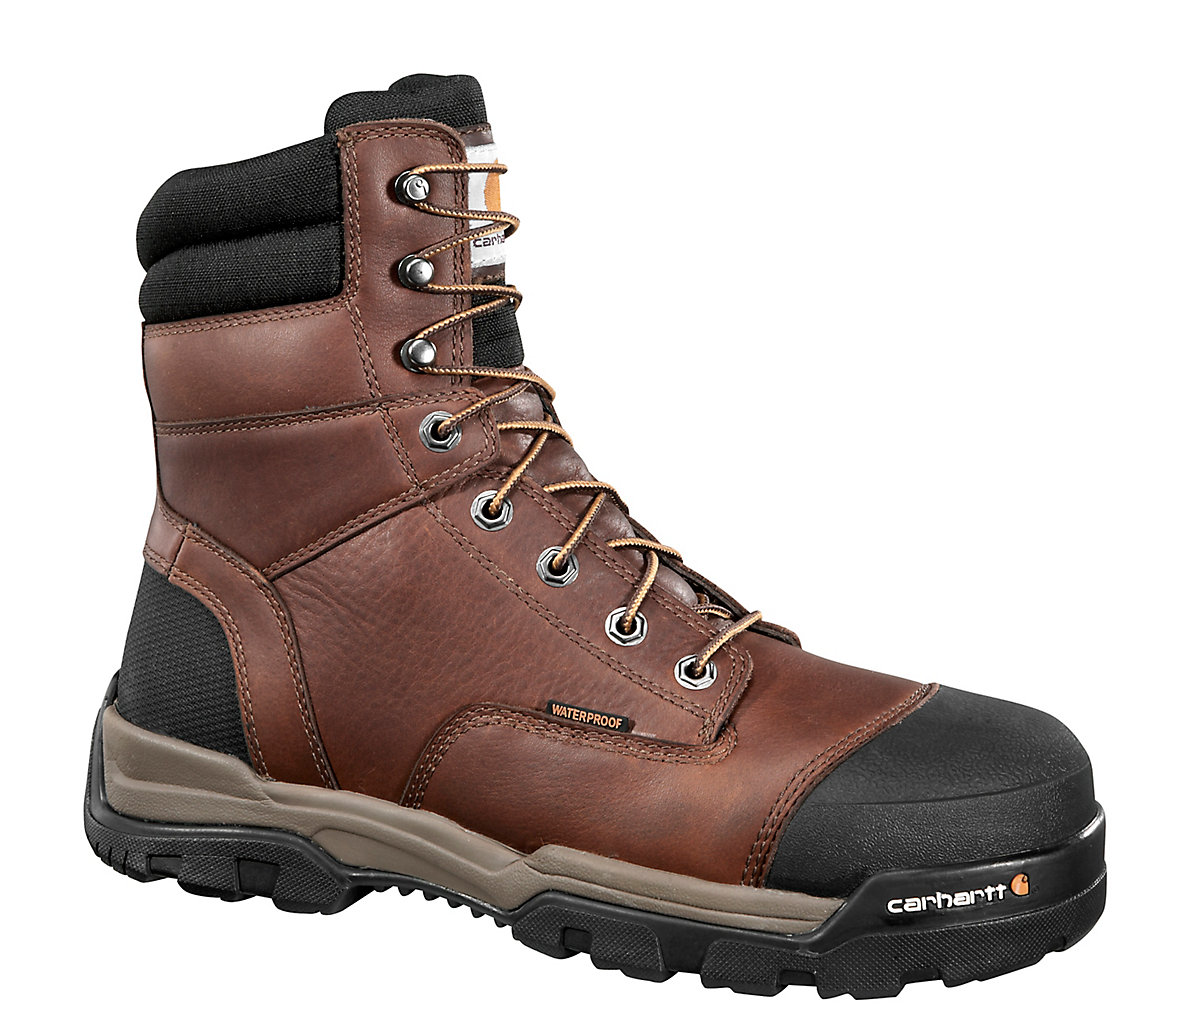 Men S Steel Toe Work Boots Safety Composite Toe Boots Carhartt